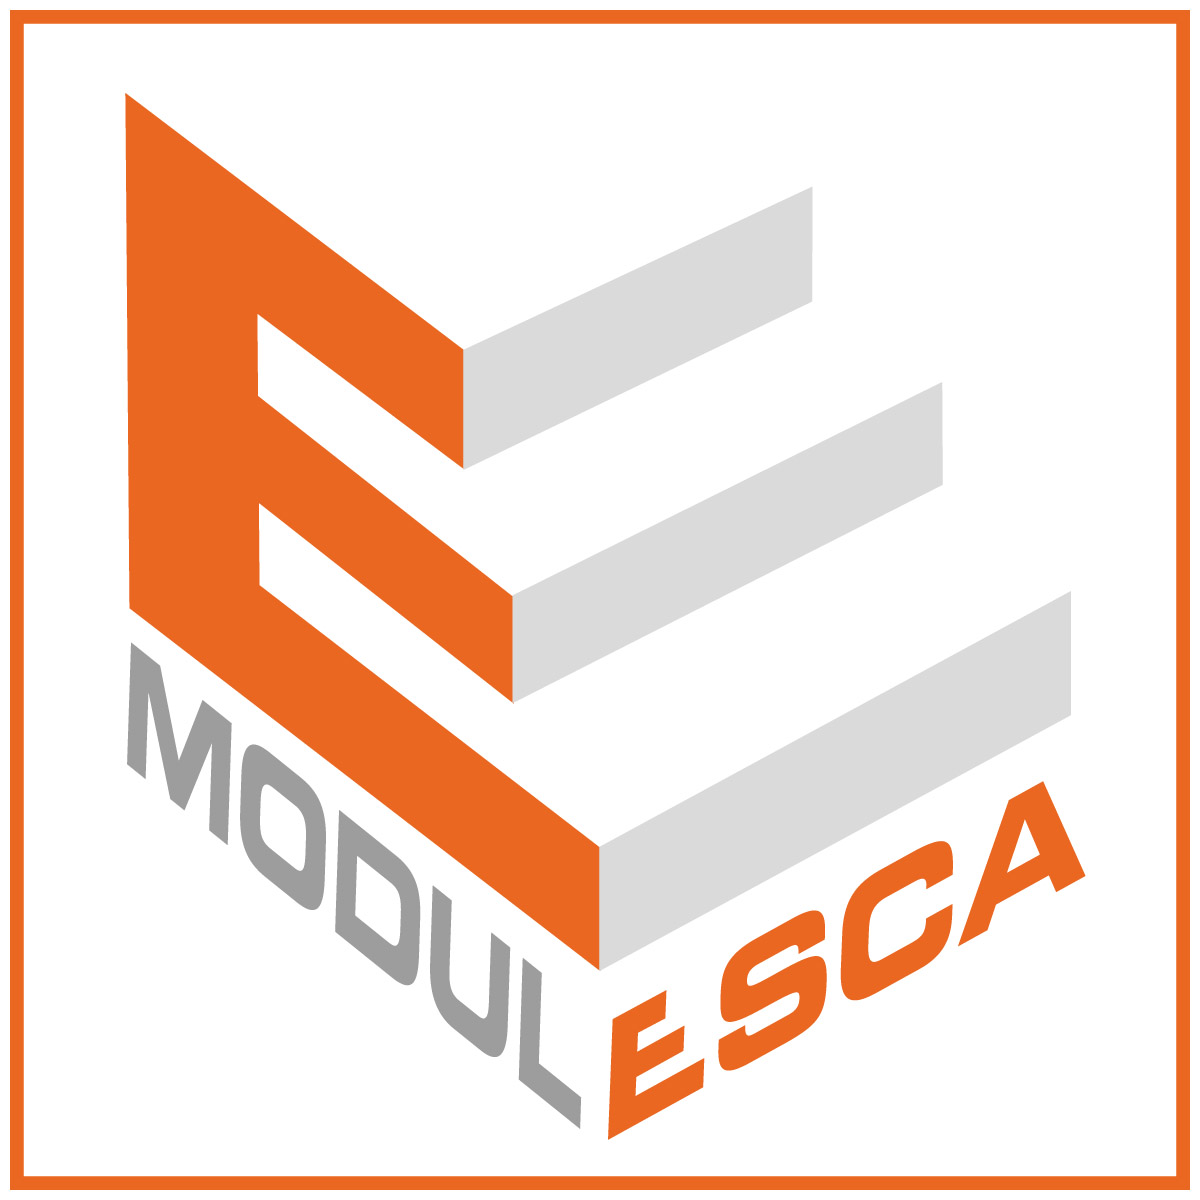 Logo_MODULESCA_Orange_et_gris.jpg